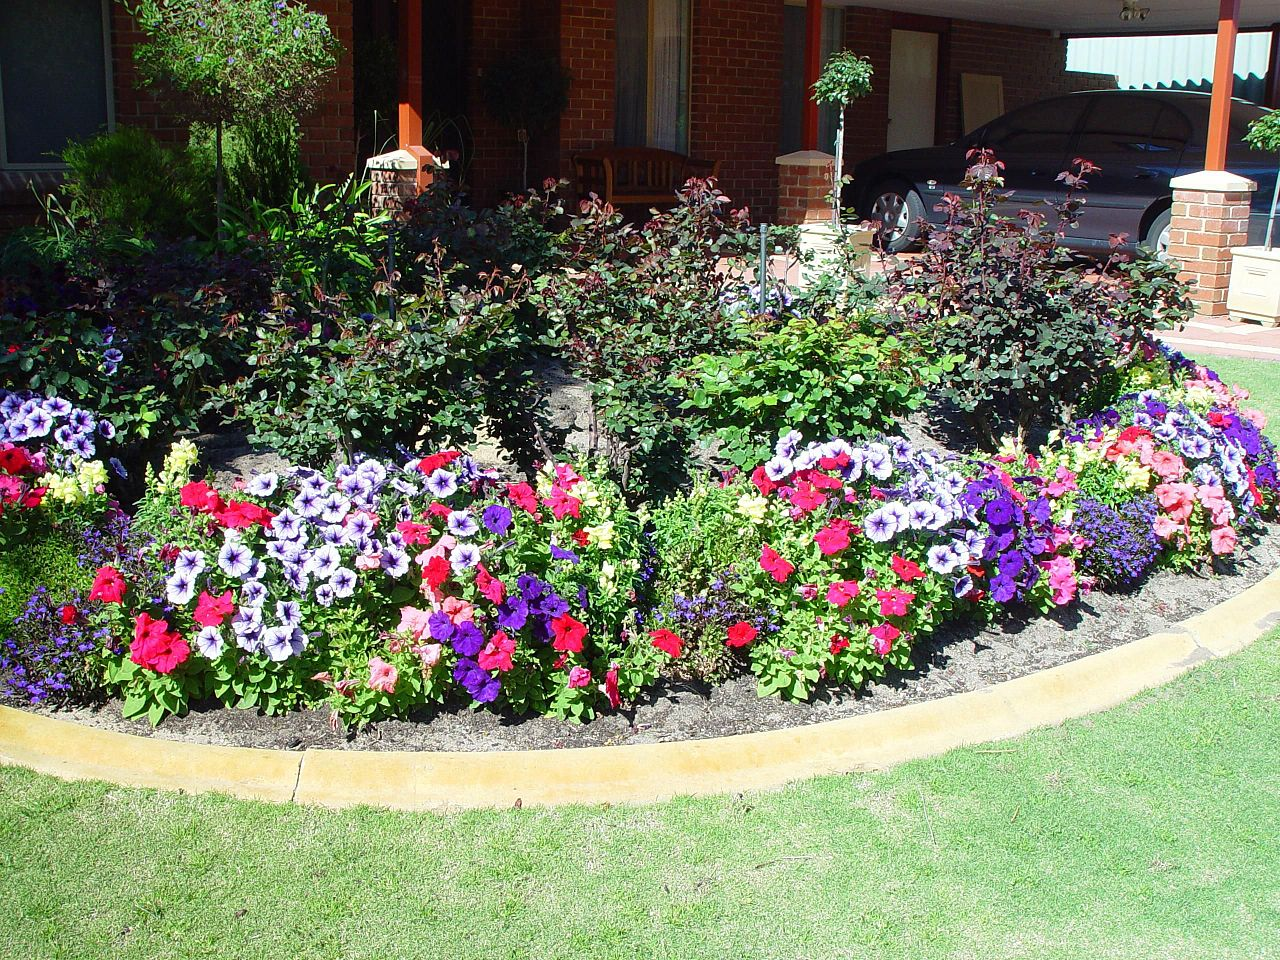 A flower garden with a wide variety of purple, red, and white blooms